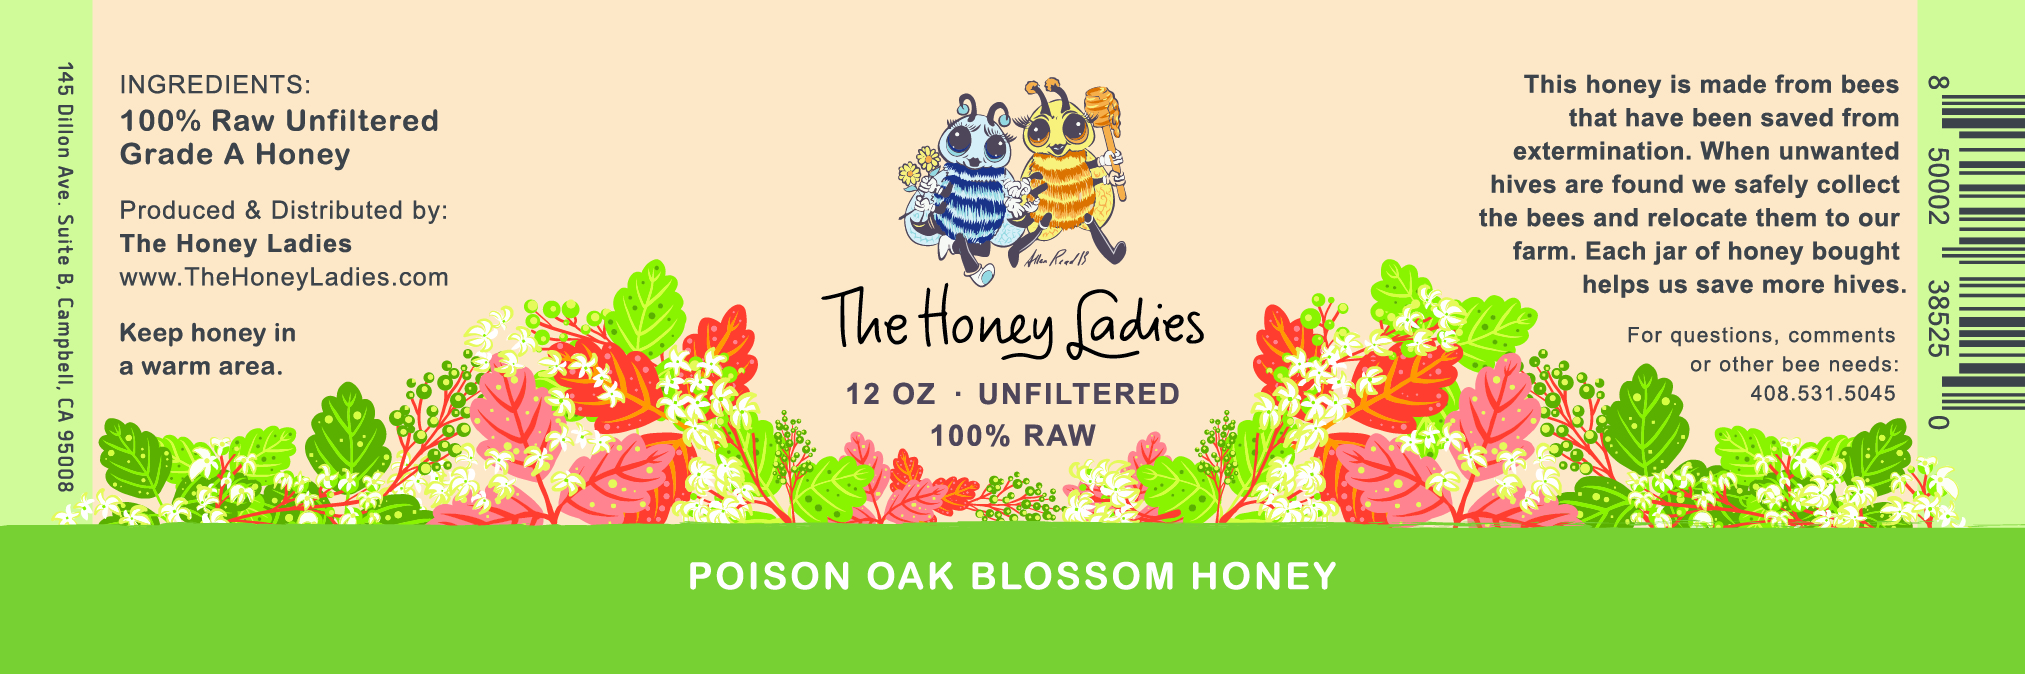 Poison Oak Blossom Honey